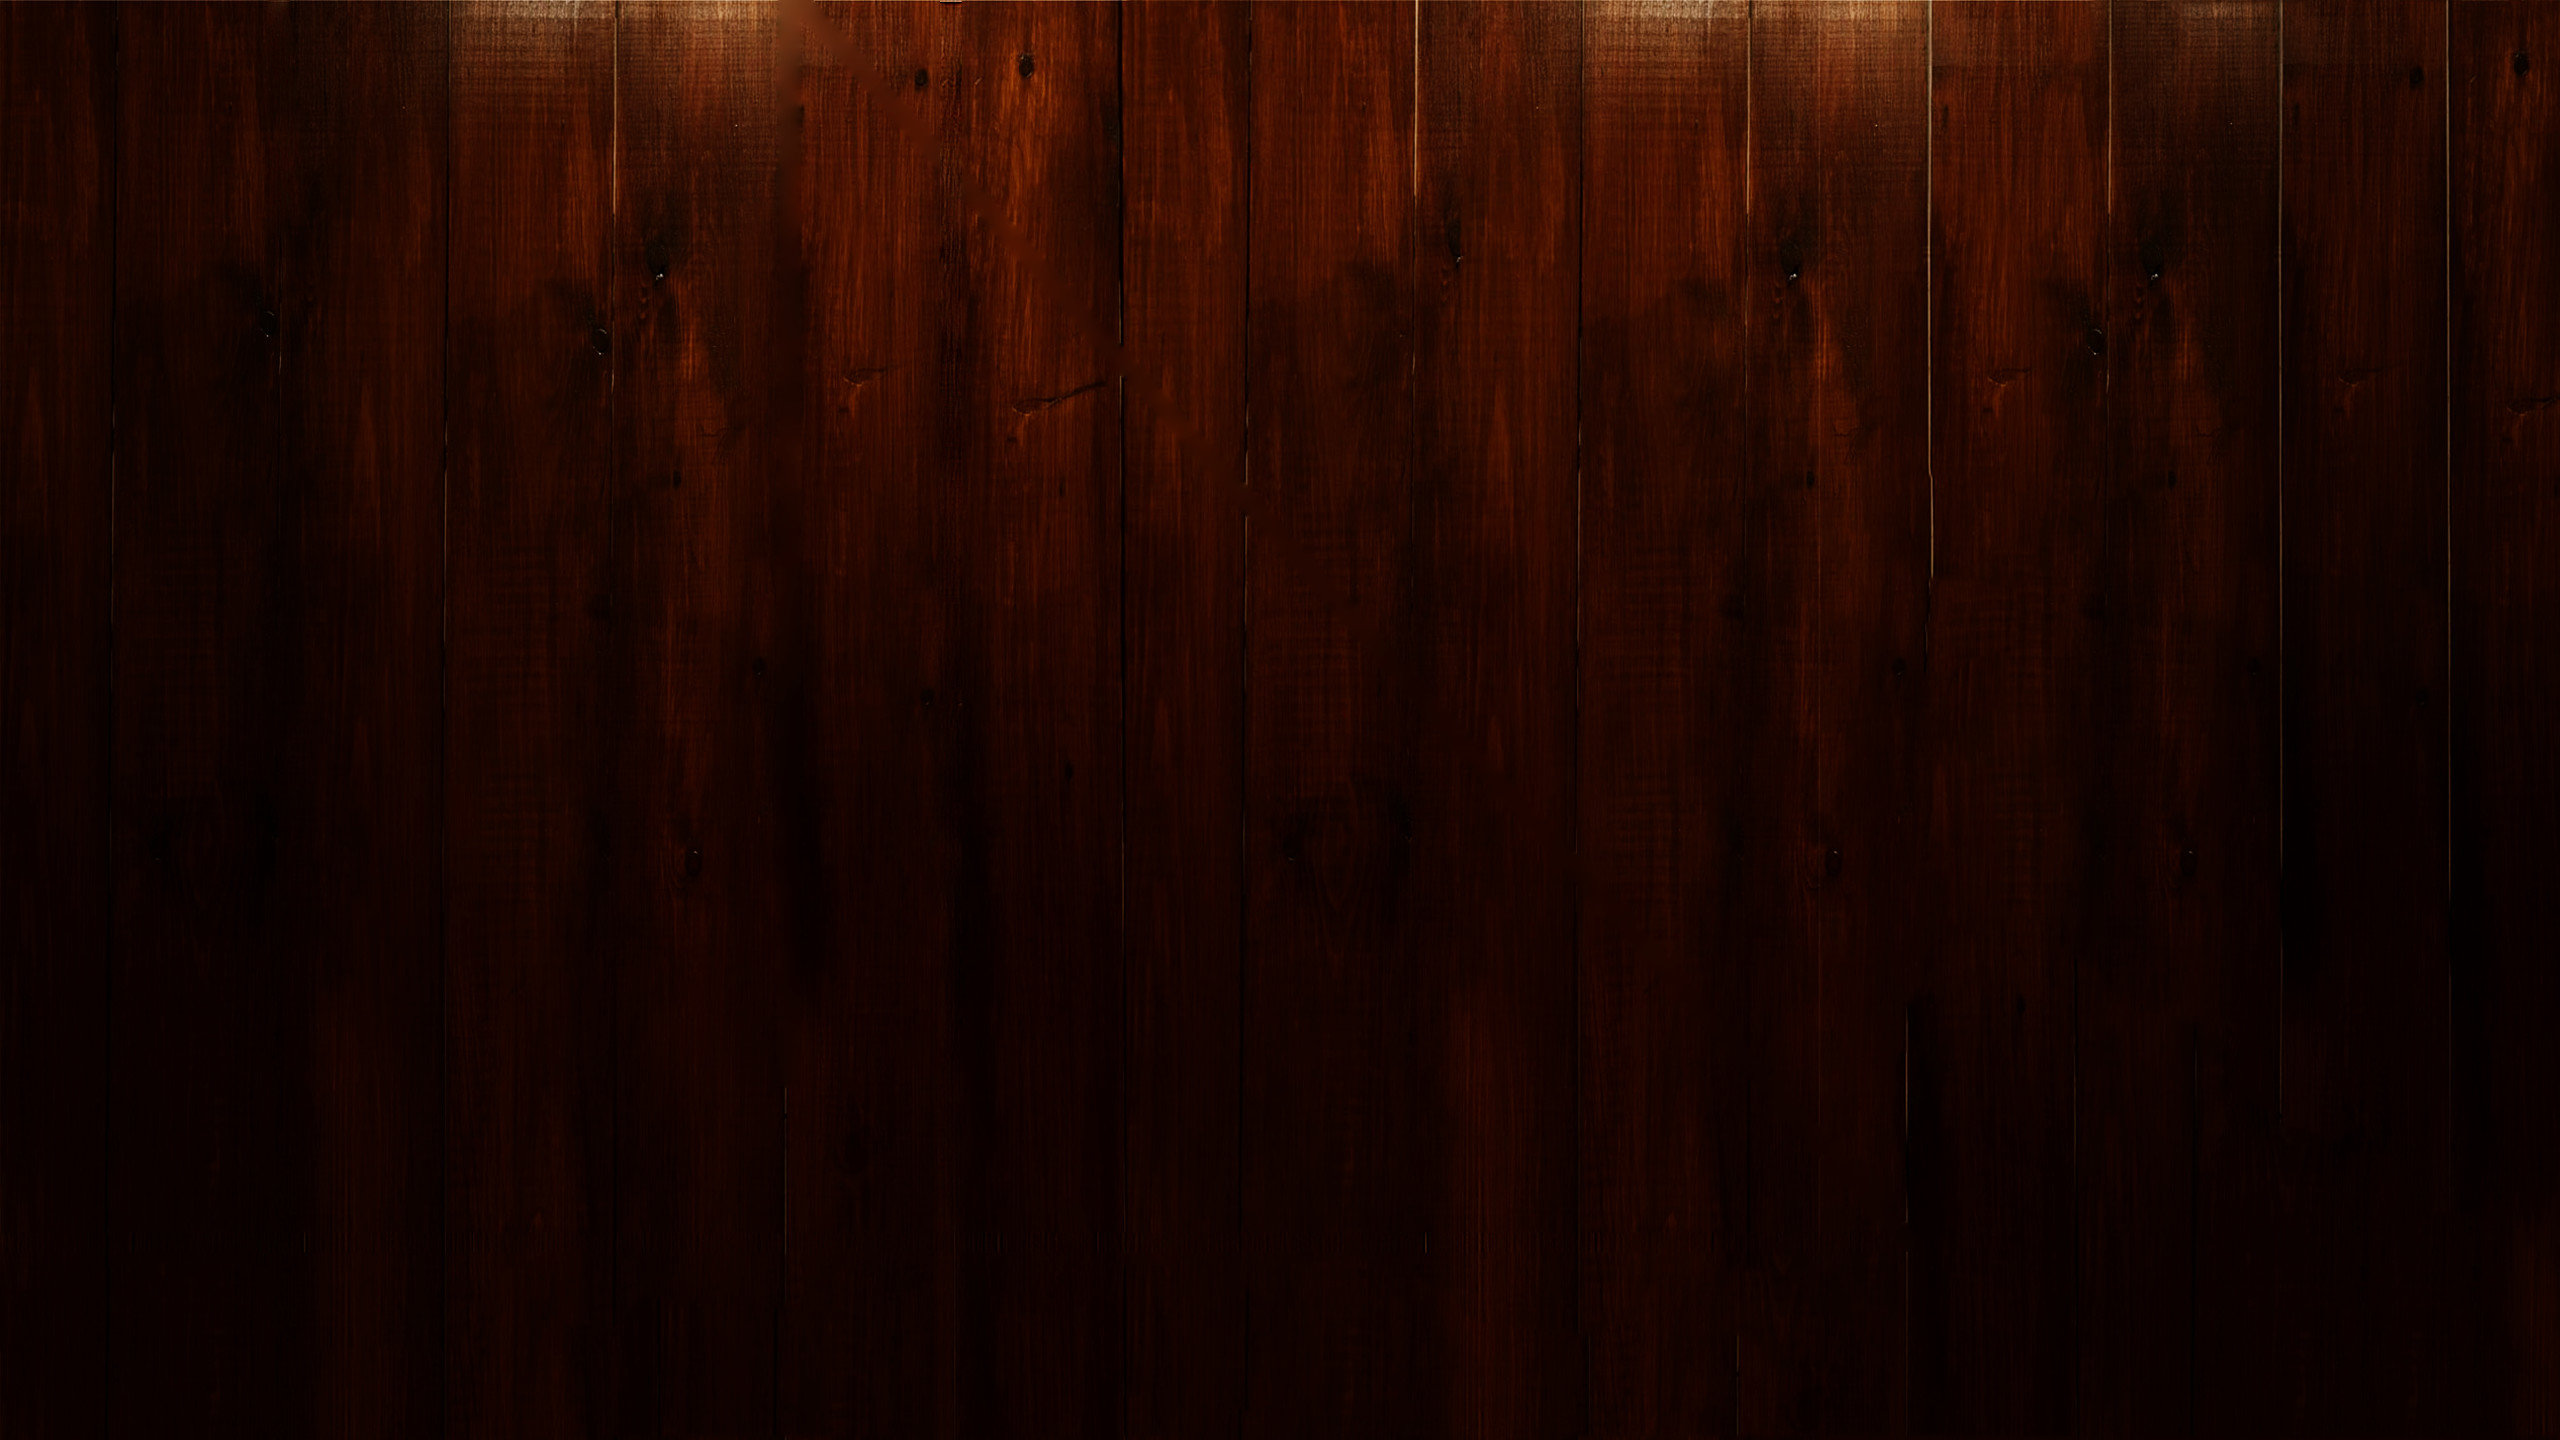 Download hd 2560x1440 Wood computer background ID:345954 for free